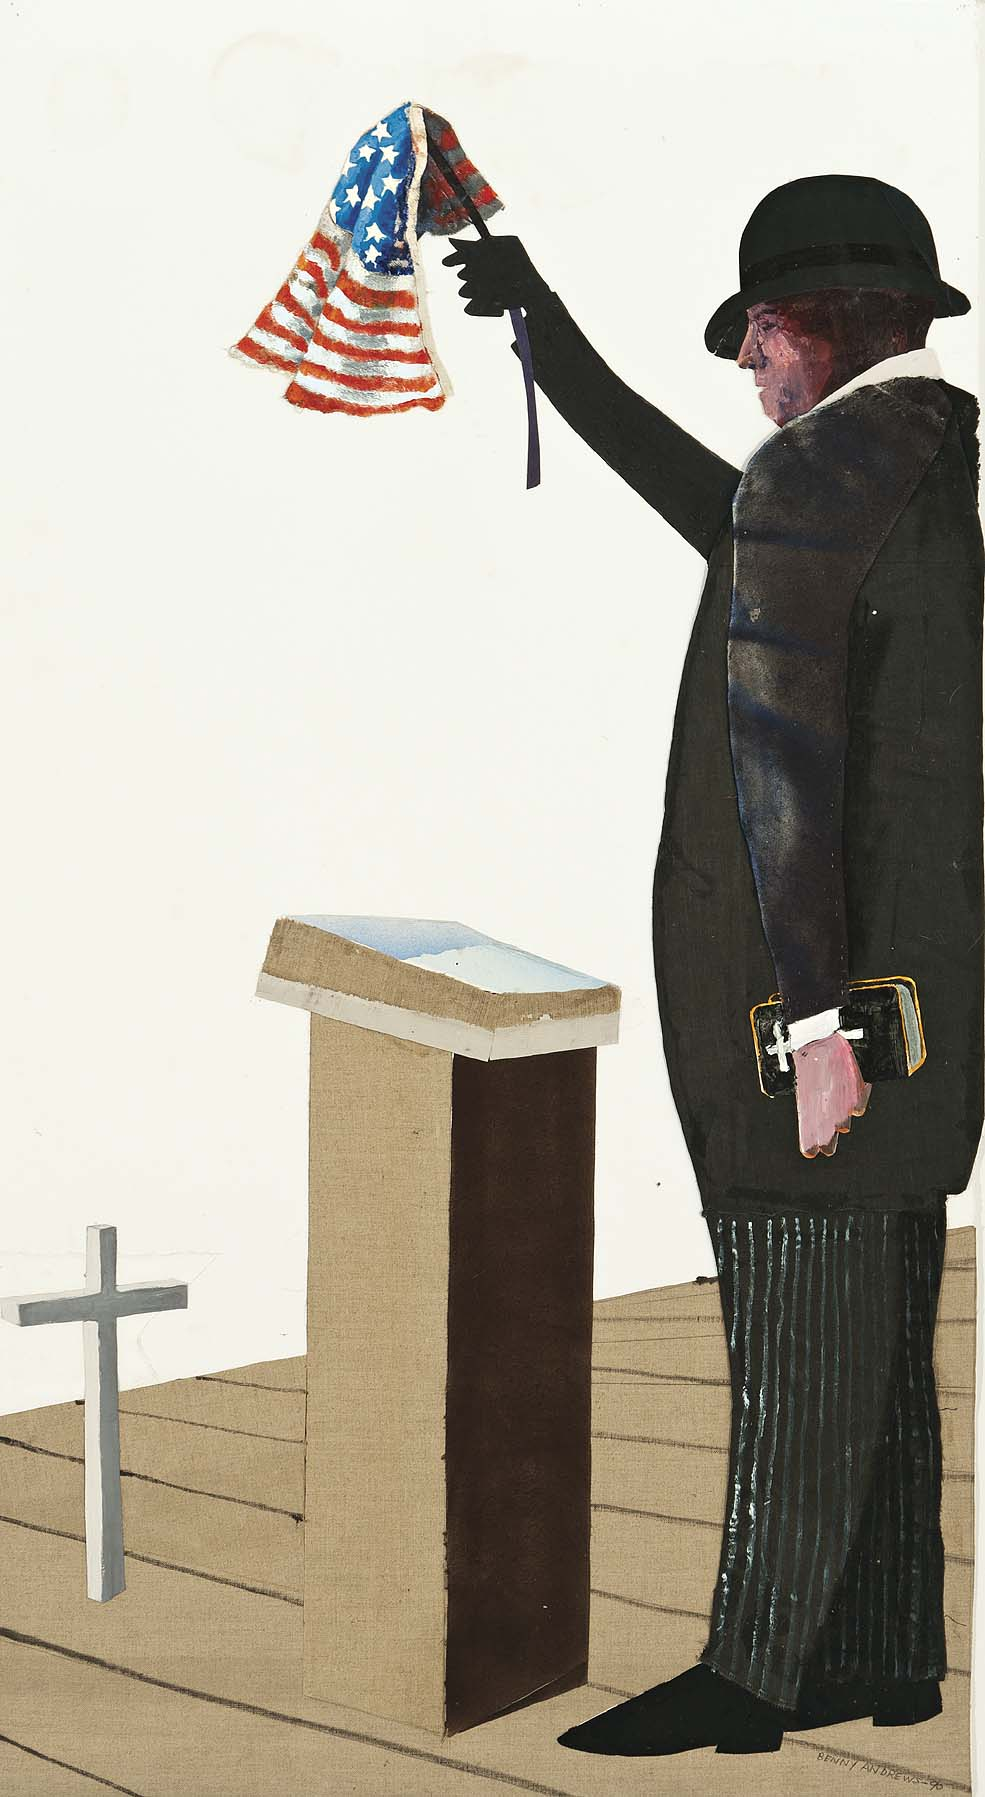 Demagogue,  1990 oil and collage on paper 50.75 x 27.75""